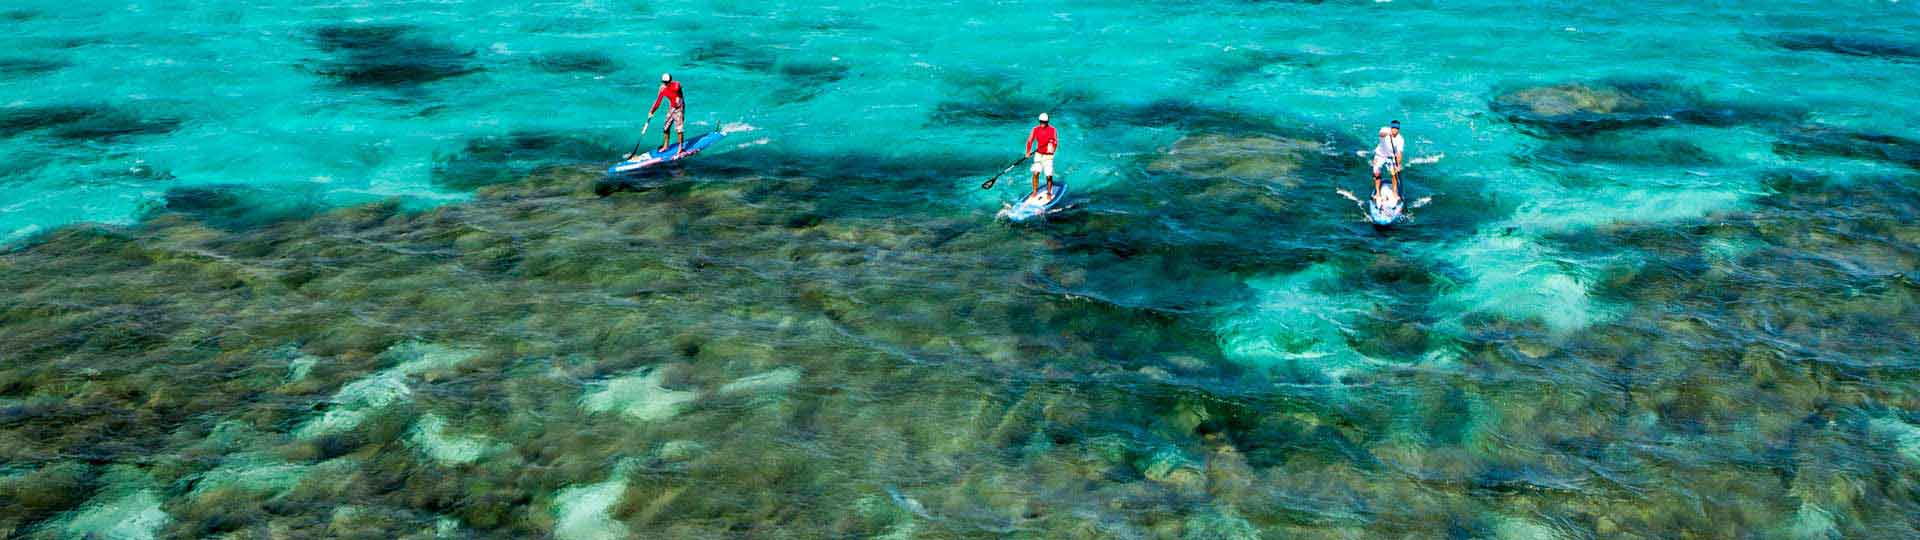 Stand up paddle on the lagoon in New Caledonia